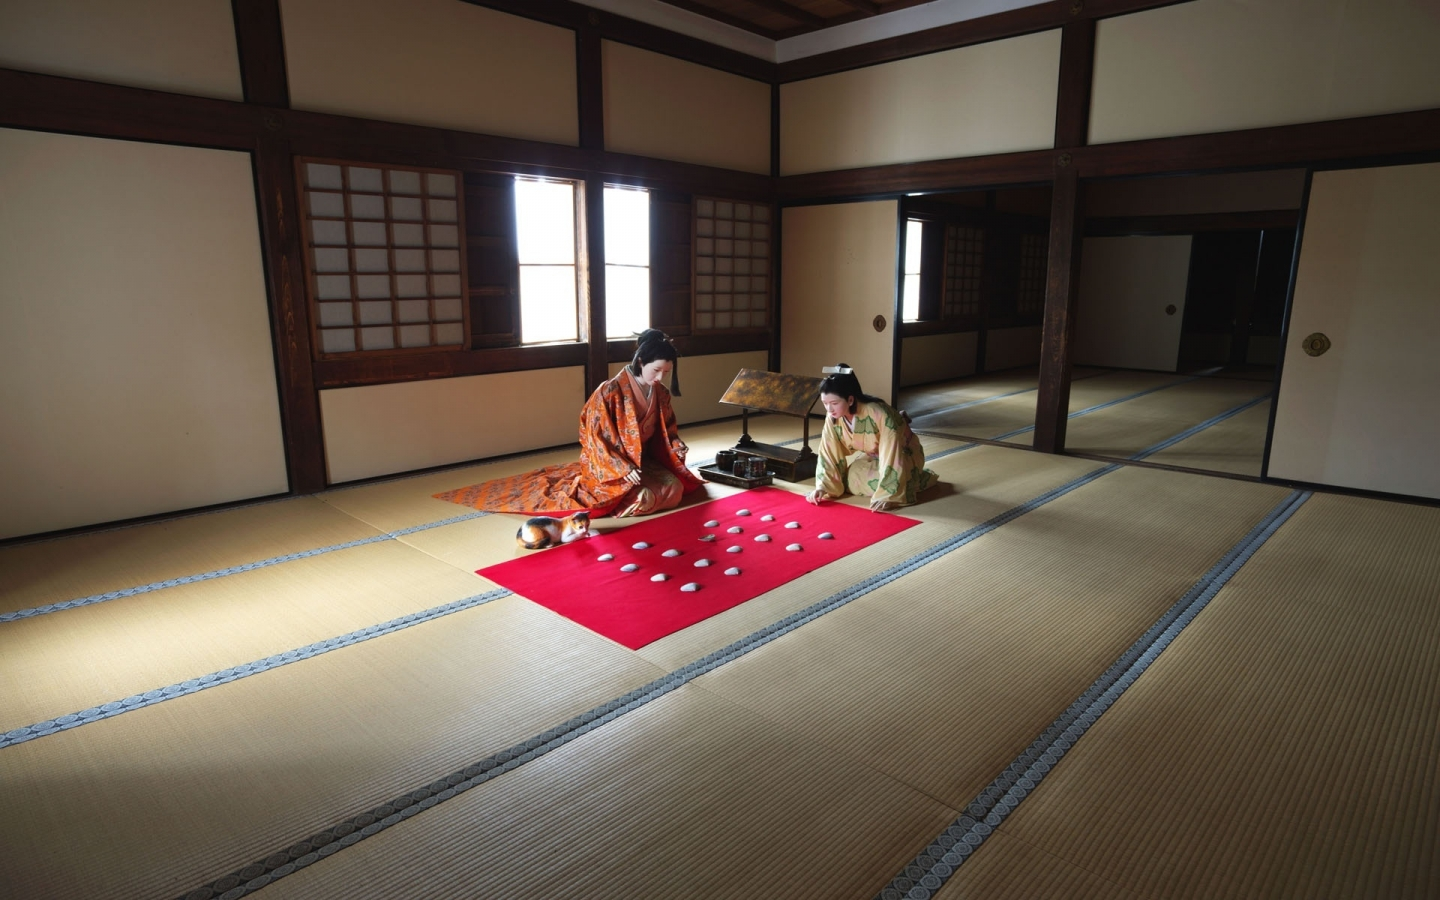 Japanese traditional women for 1440 x 900 widescreen resolution